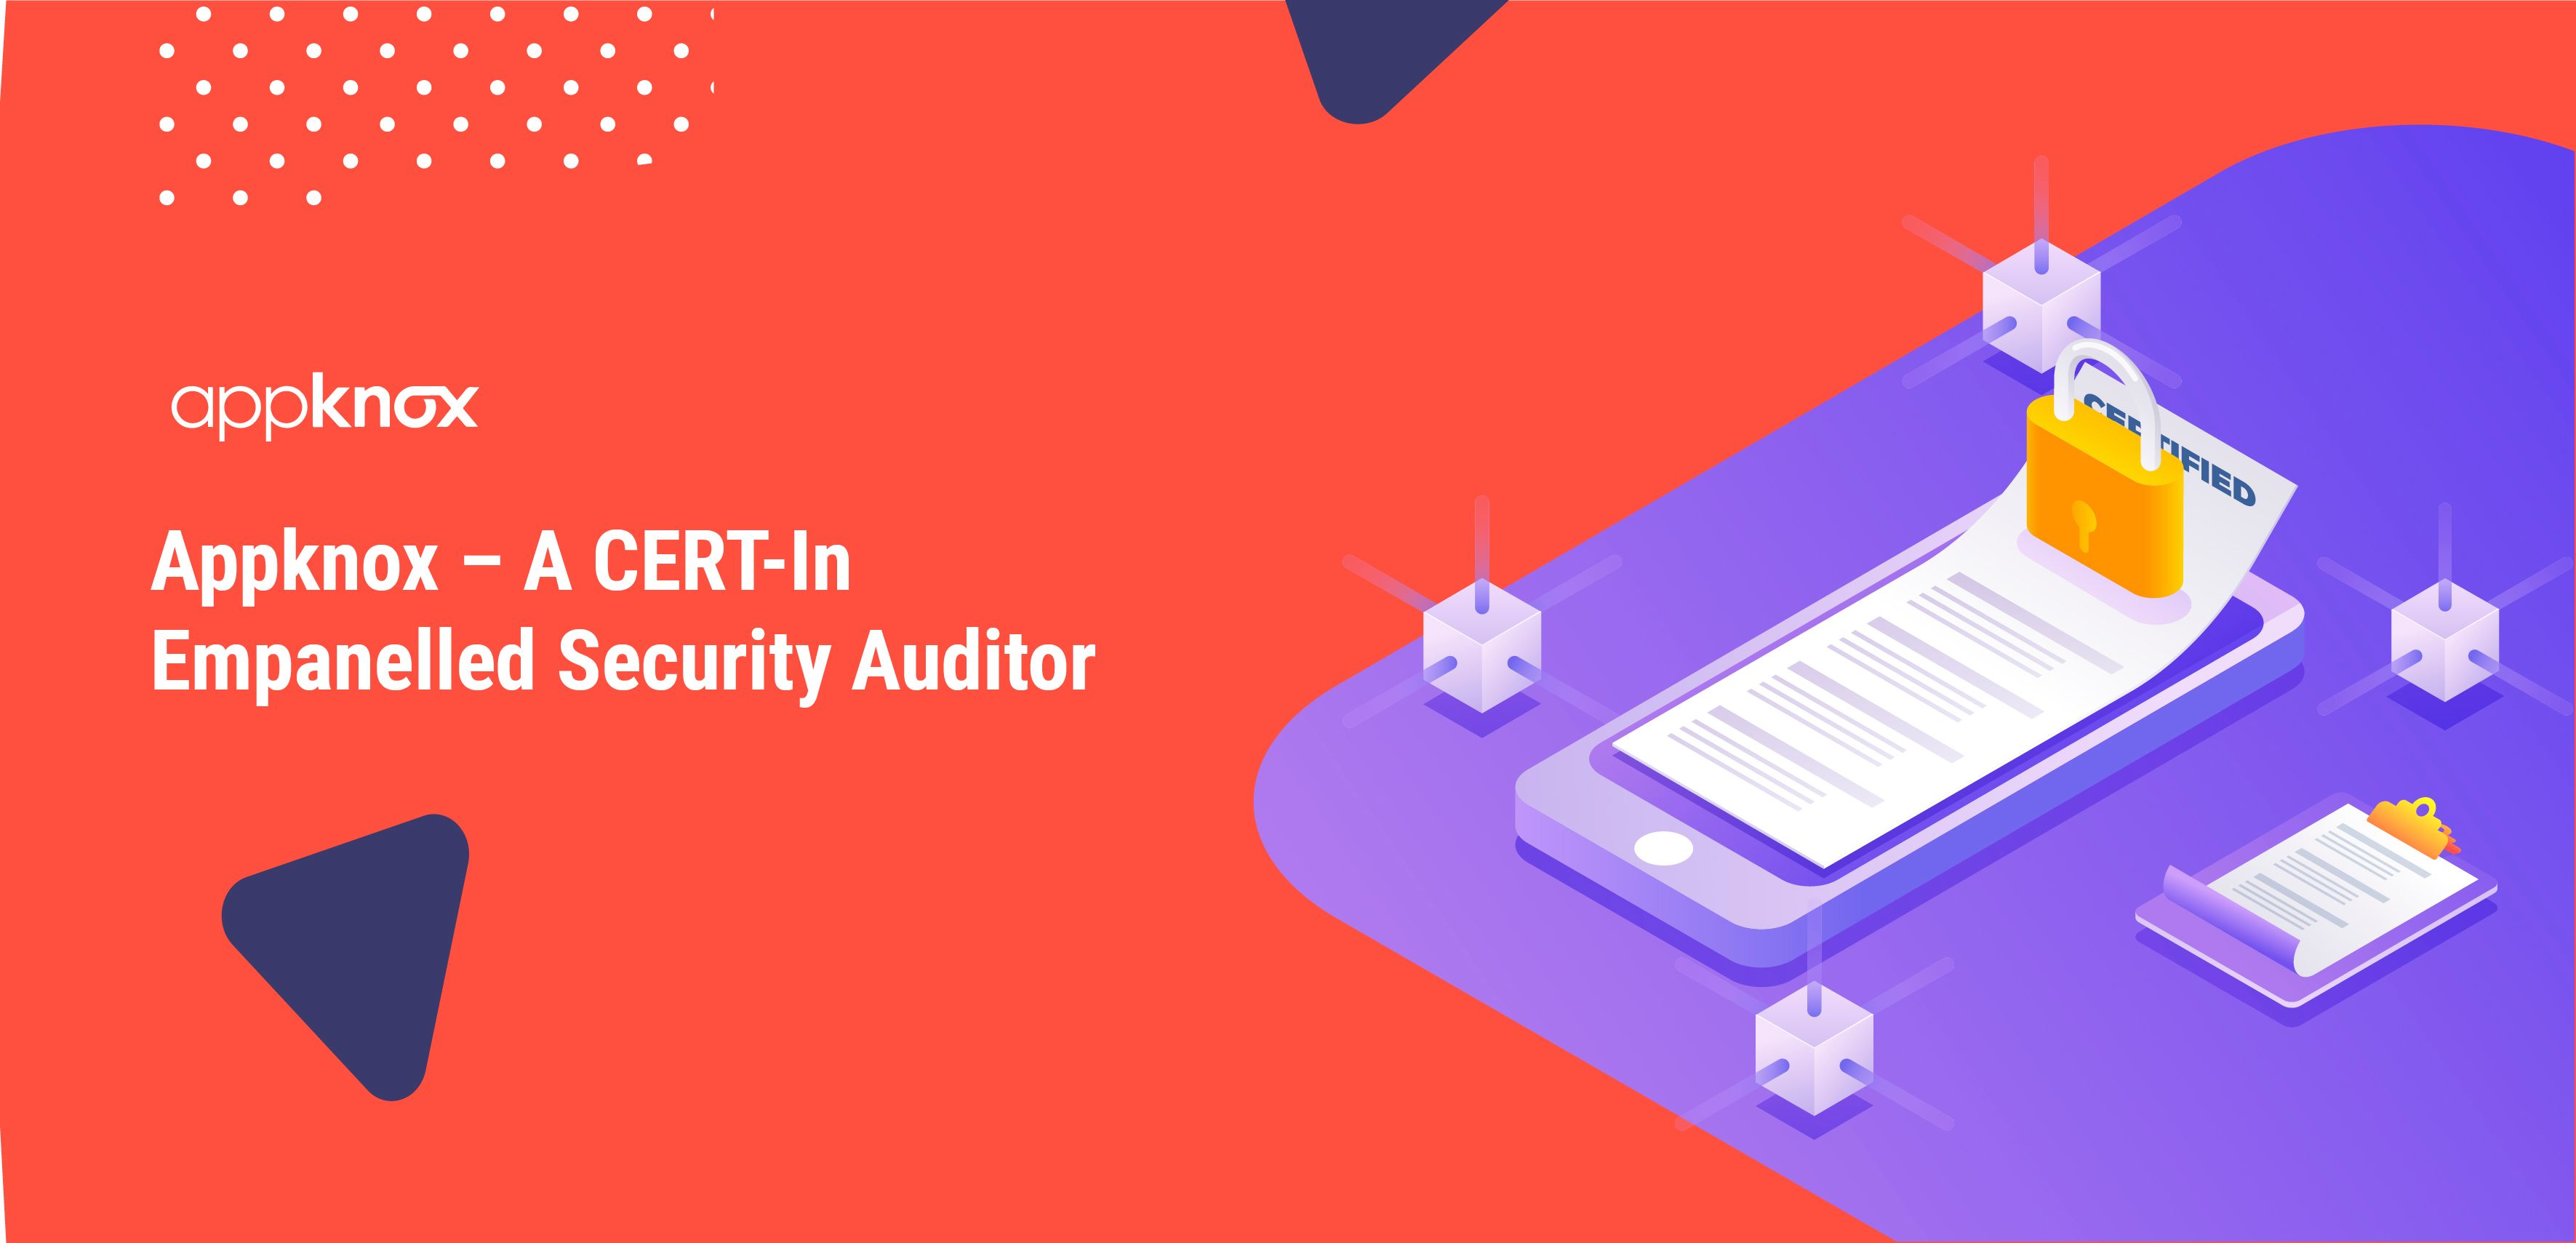 Appknox – A CERT-In Empanelled Security Auditor